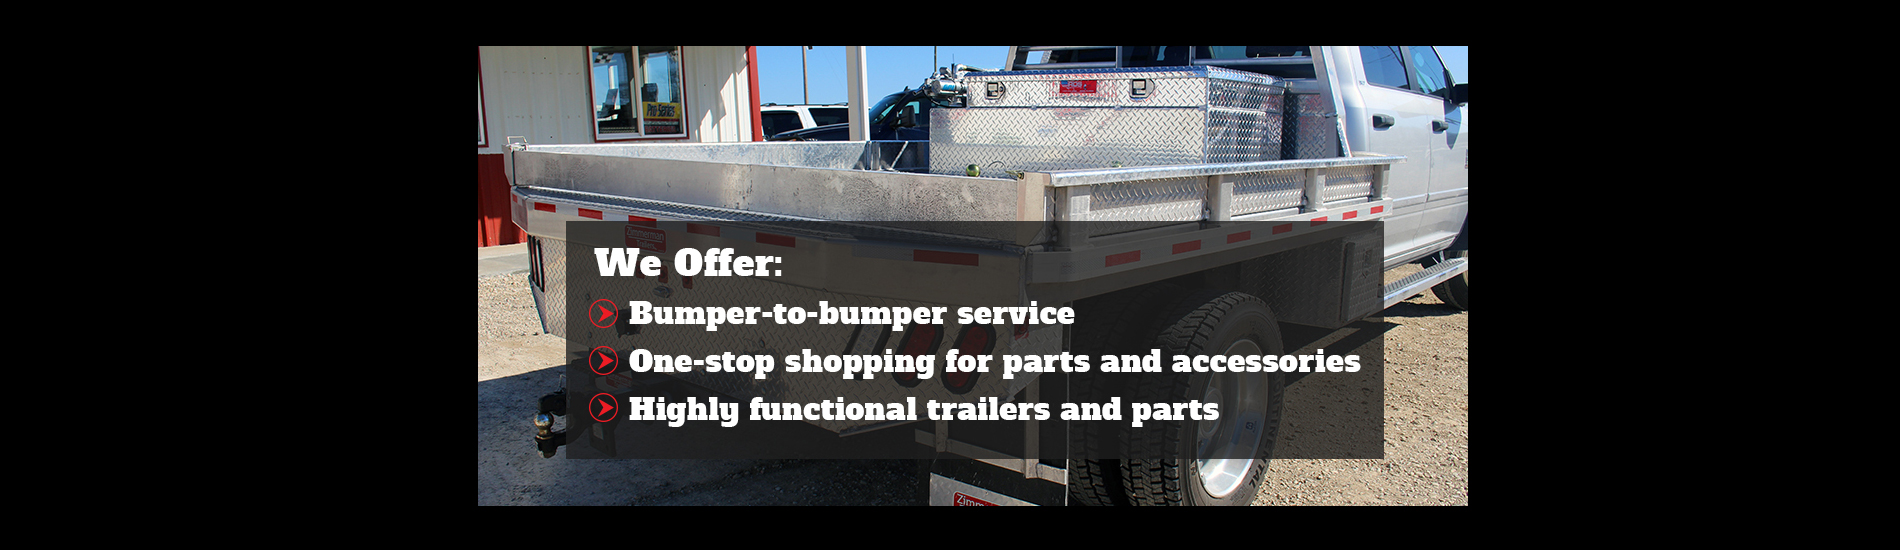 Home Page | Trailer & Truck Accessories Dealer in Versailles, MO